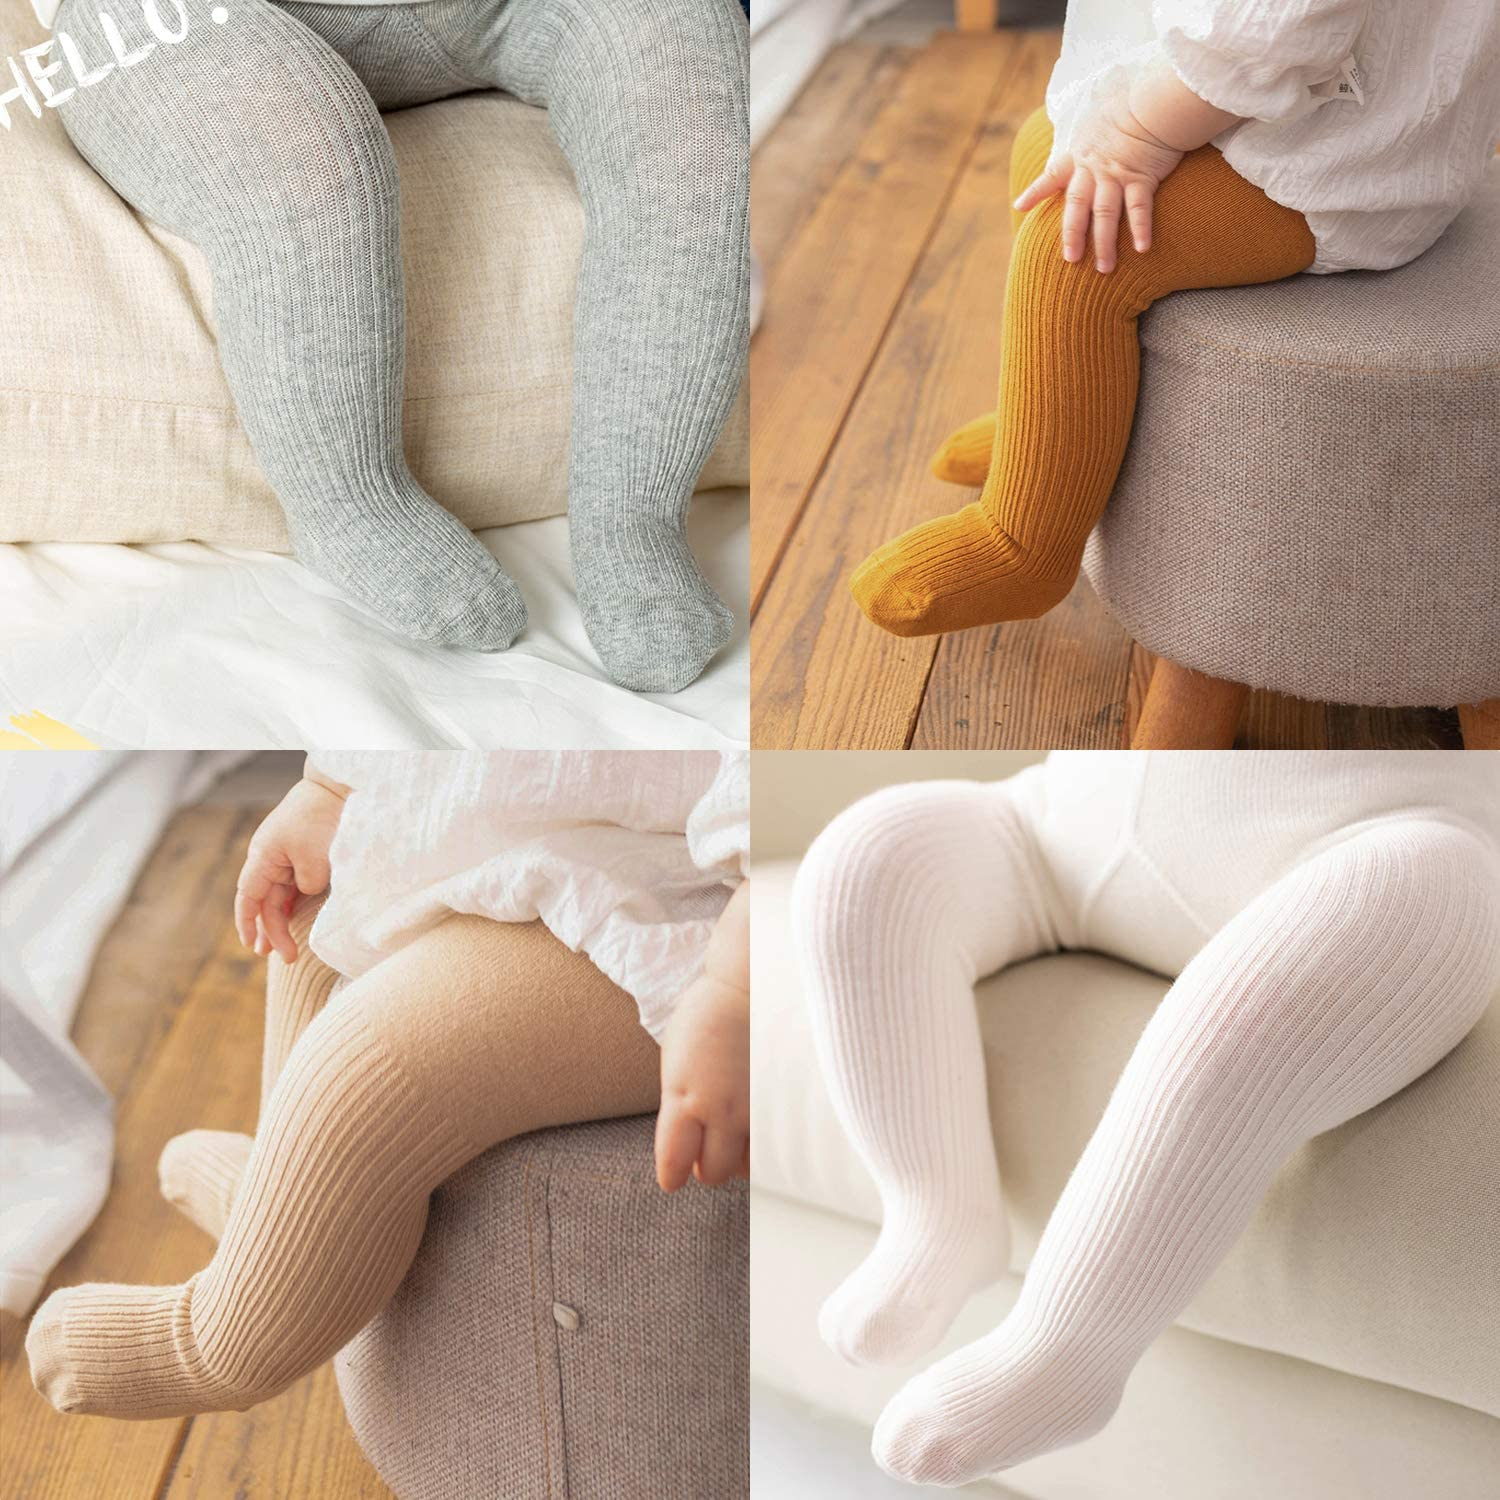 Zando Baby Tights Girls Leggings Seamless Cotton Baby Stockings Toddler Cable Knit Tights Pants Pantyhose Infants Newborn